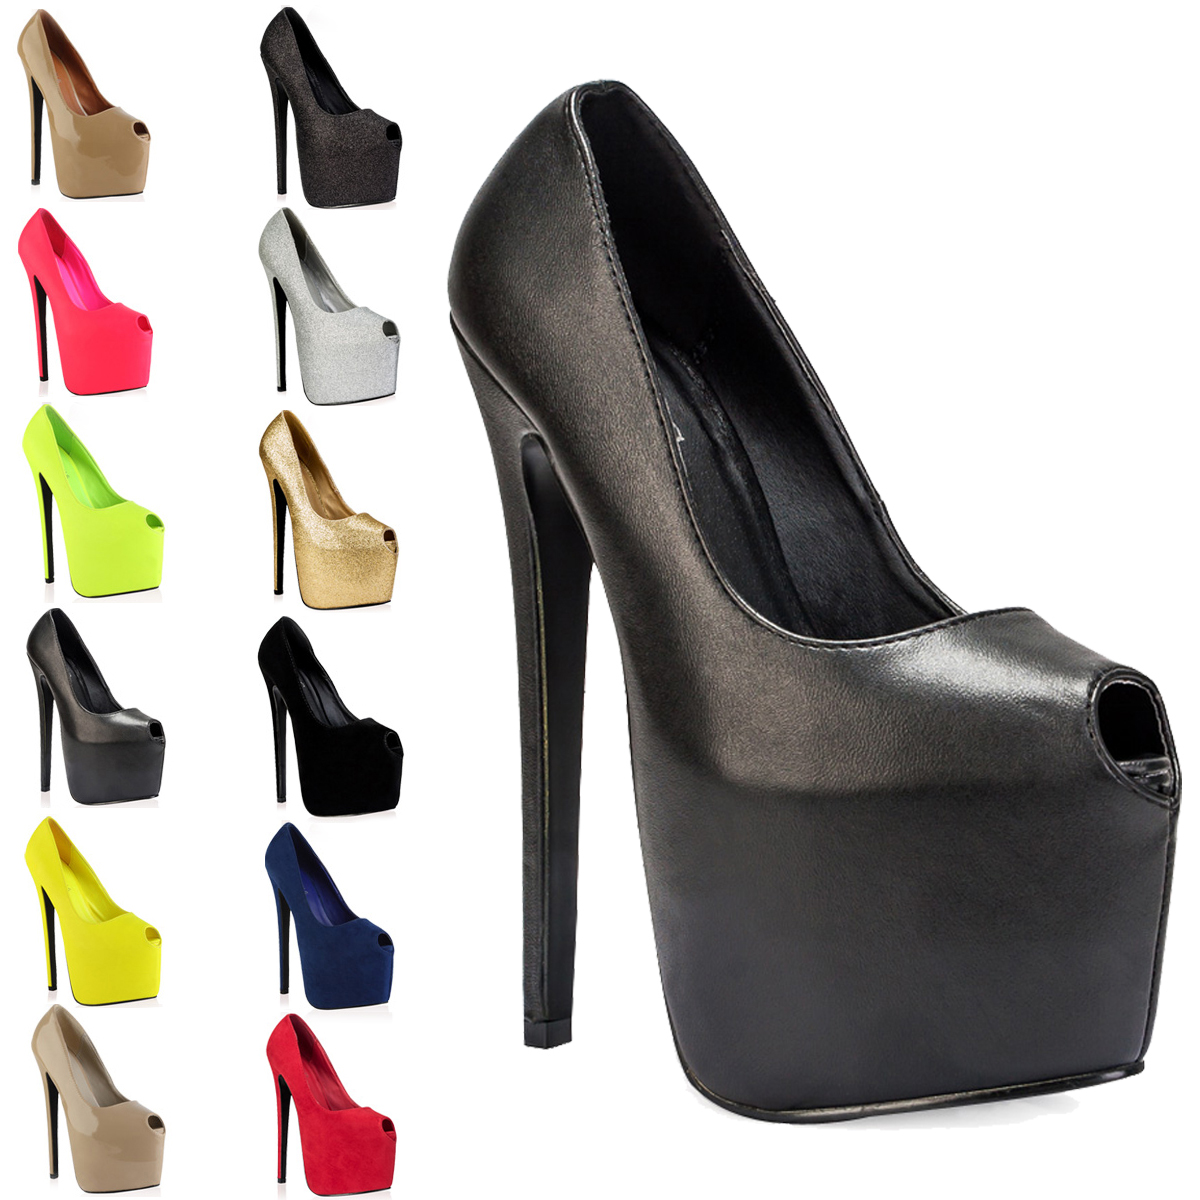 U.S. size 10 heels for women are not limited to practical-looking shoes. You can find designer styles suited for formal wear, trendy platforms, casual pumps, comfortable wedges, sophisticated career shoes, stylish boots, and elegant high heels.